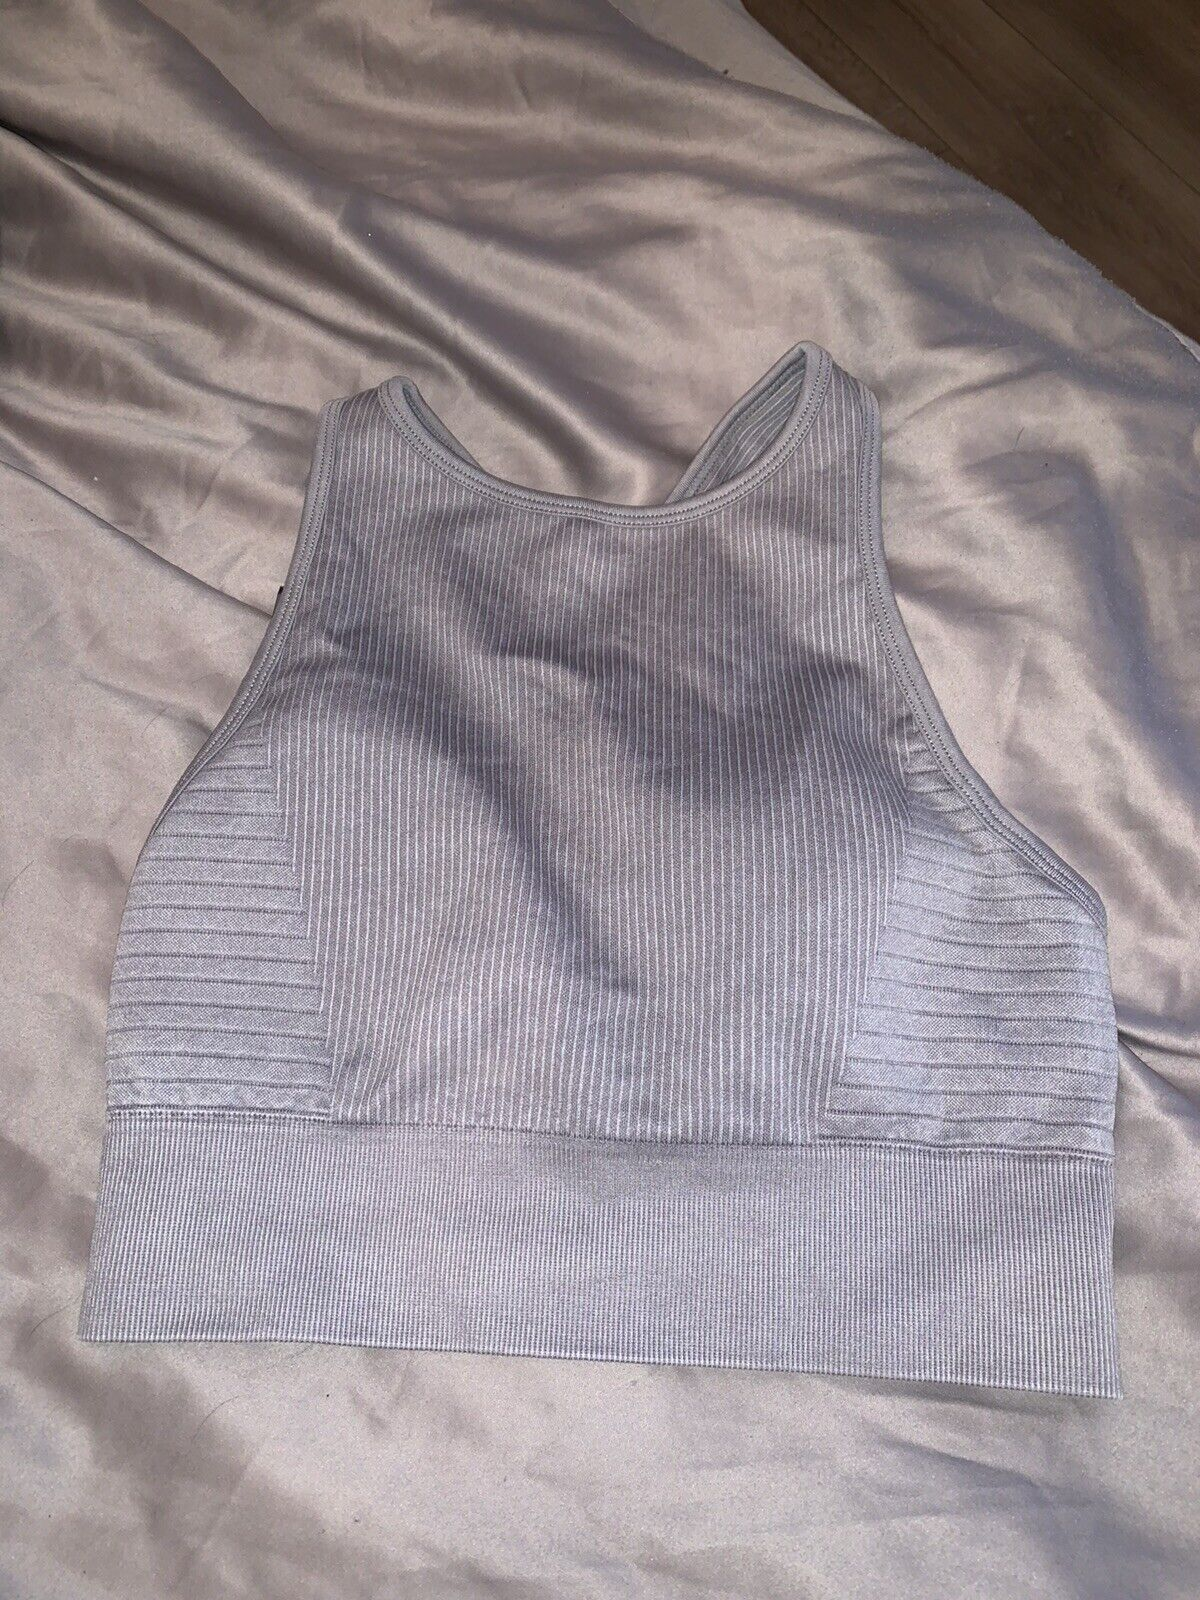 My Protein seamless grey sports bra. Size Small. Never been worn